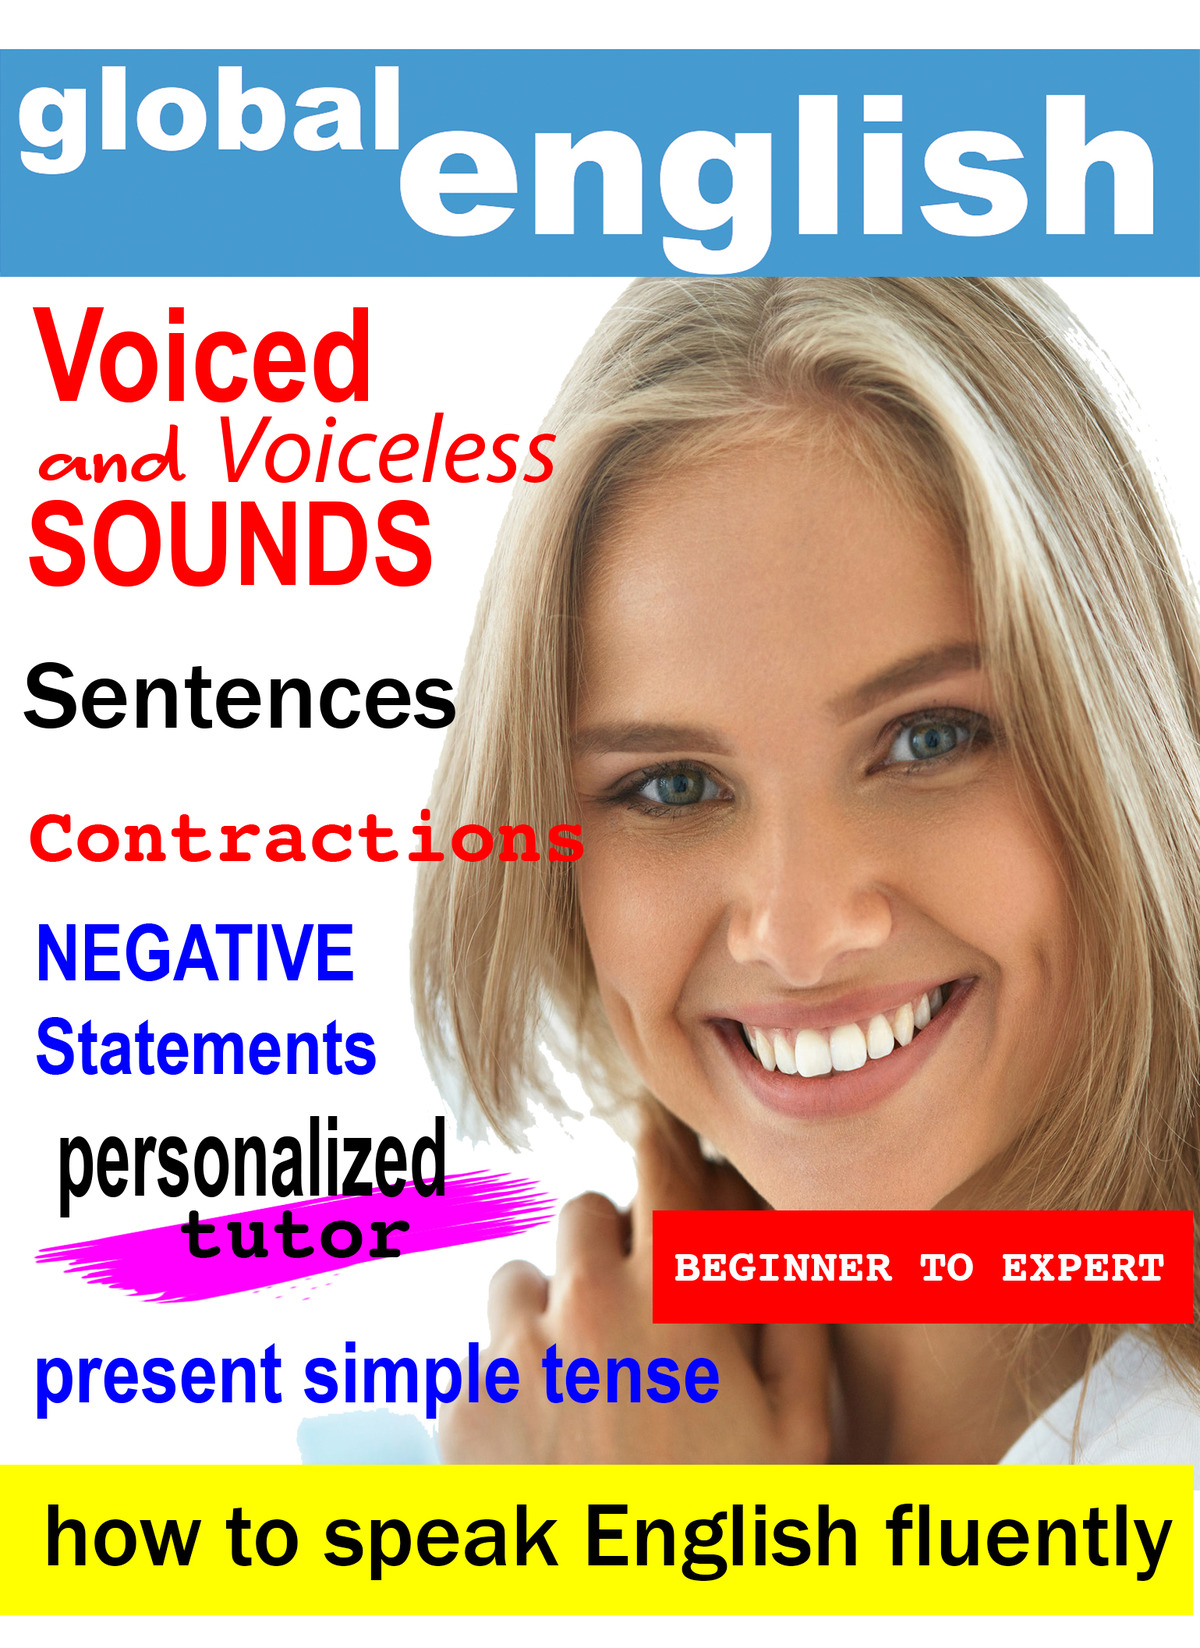 K7003 - Present Simple Tense Sentence Forms, Contractions, Pronunciation (Voiced and Voiceless Sounds), Words Endings